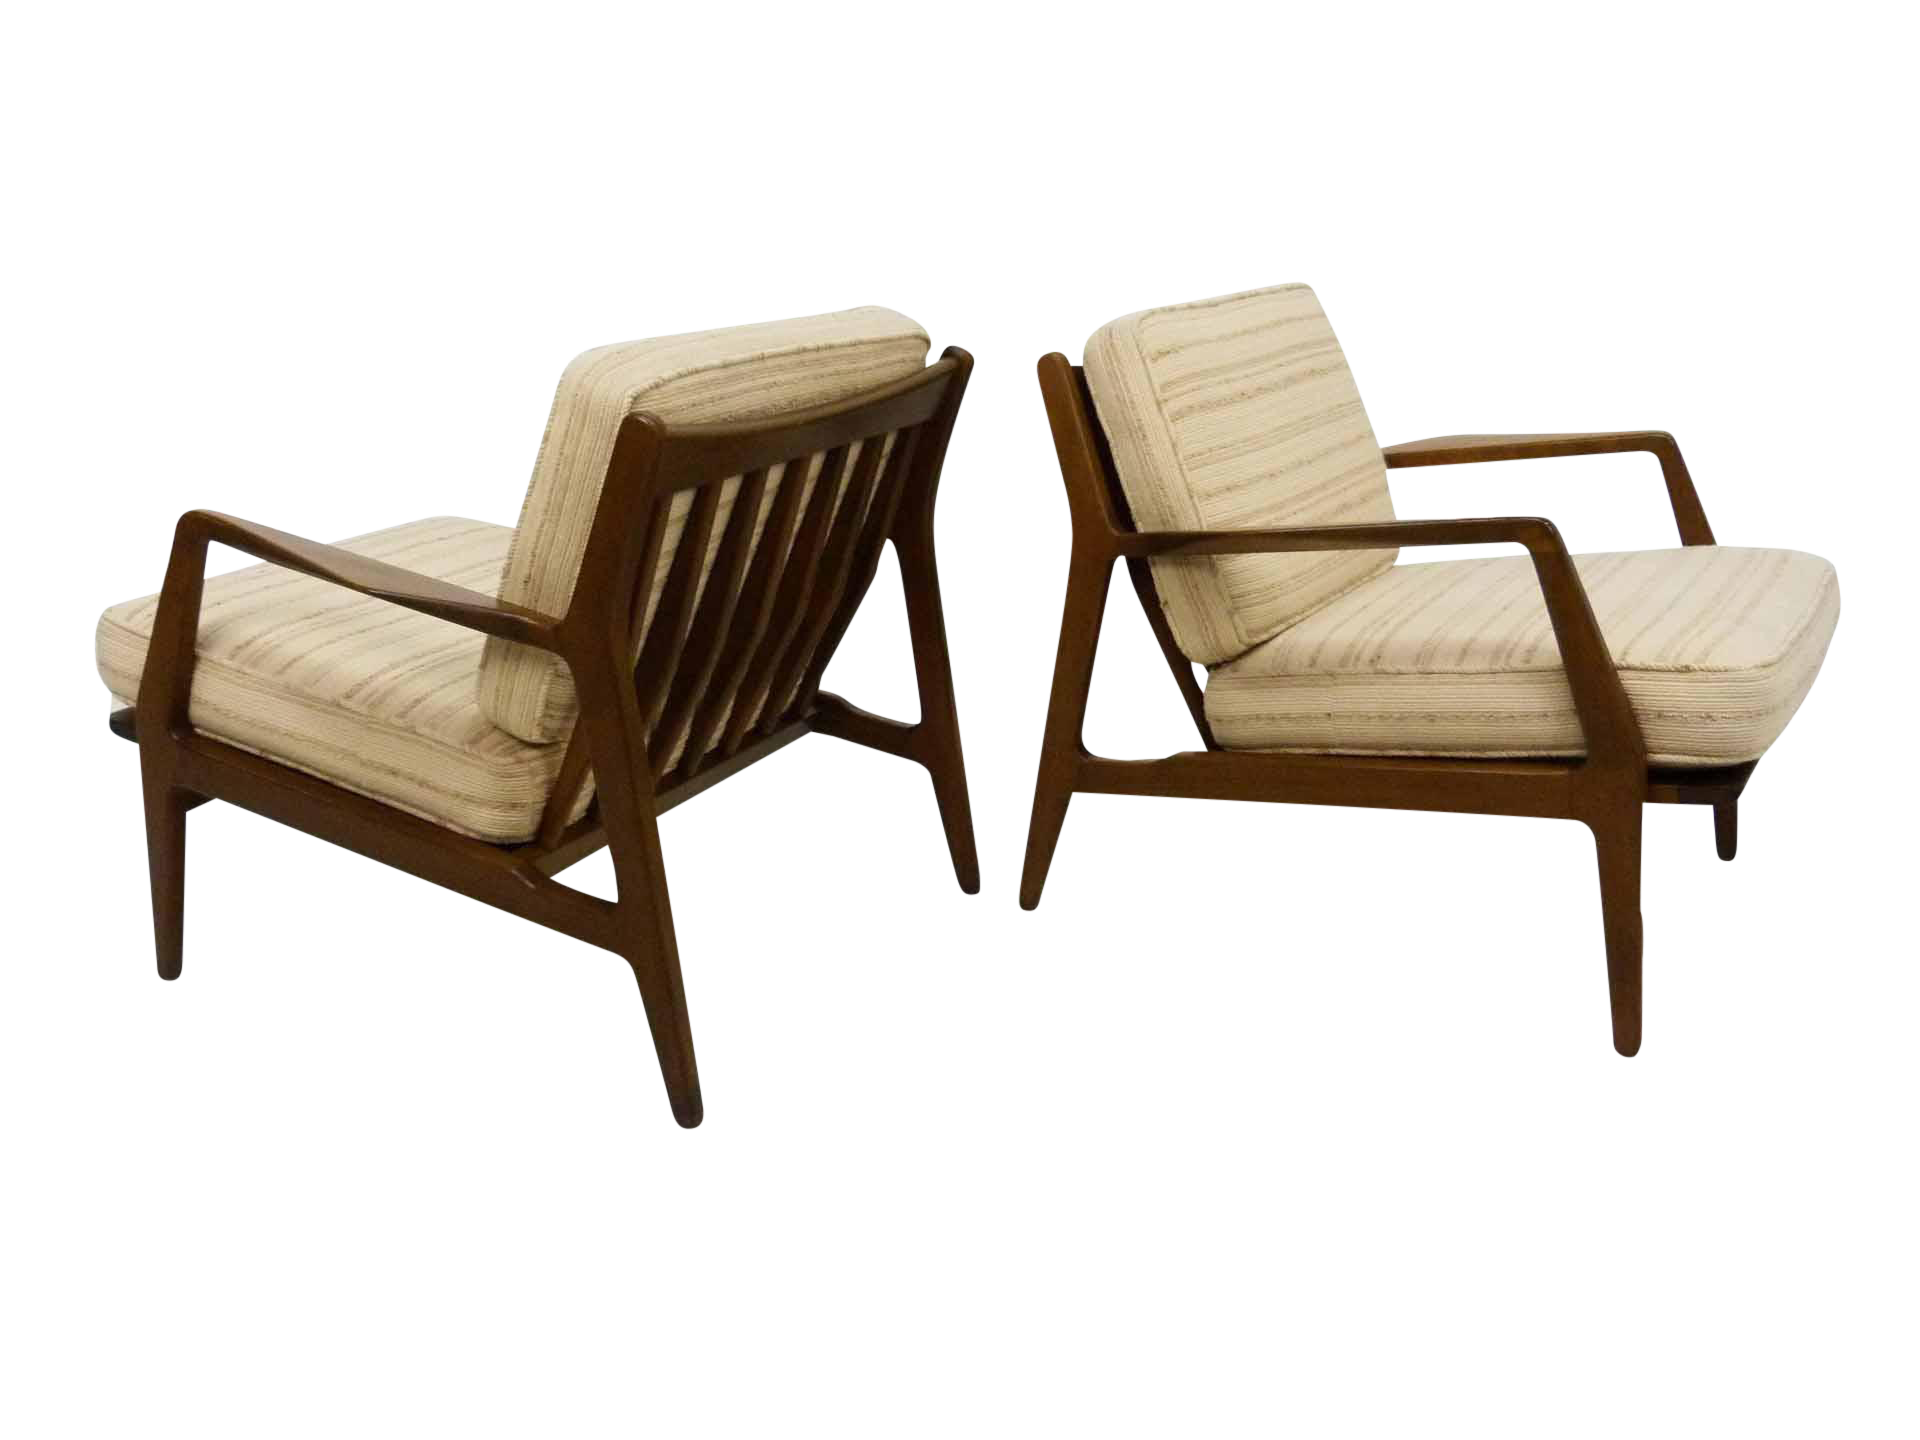 This sculptural pair of lounge chairs by ib kofod larsen is no longer - This Sculptural Pair Of Lounge Chairs By Ib Kofod Larsen Is No Longer 37